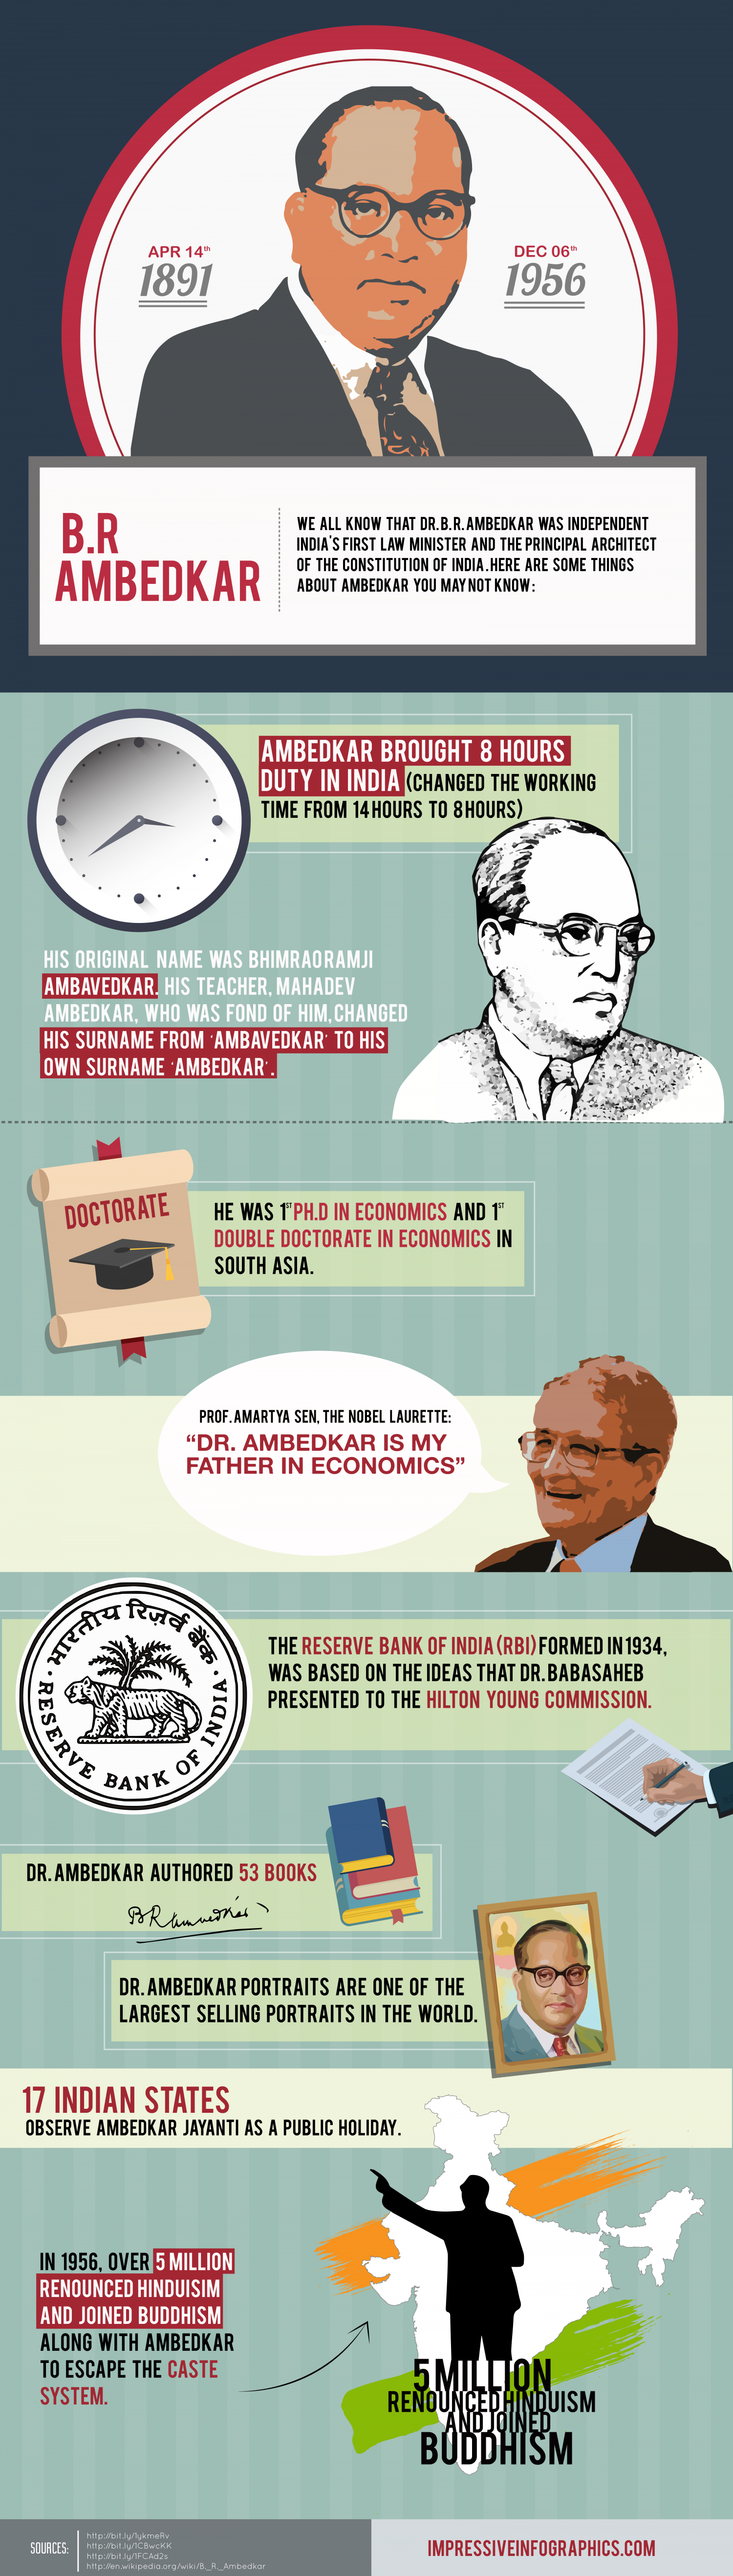 Dr. B. R Ambedkar -  The Father of Modern India Infographic